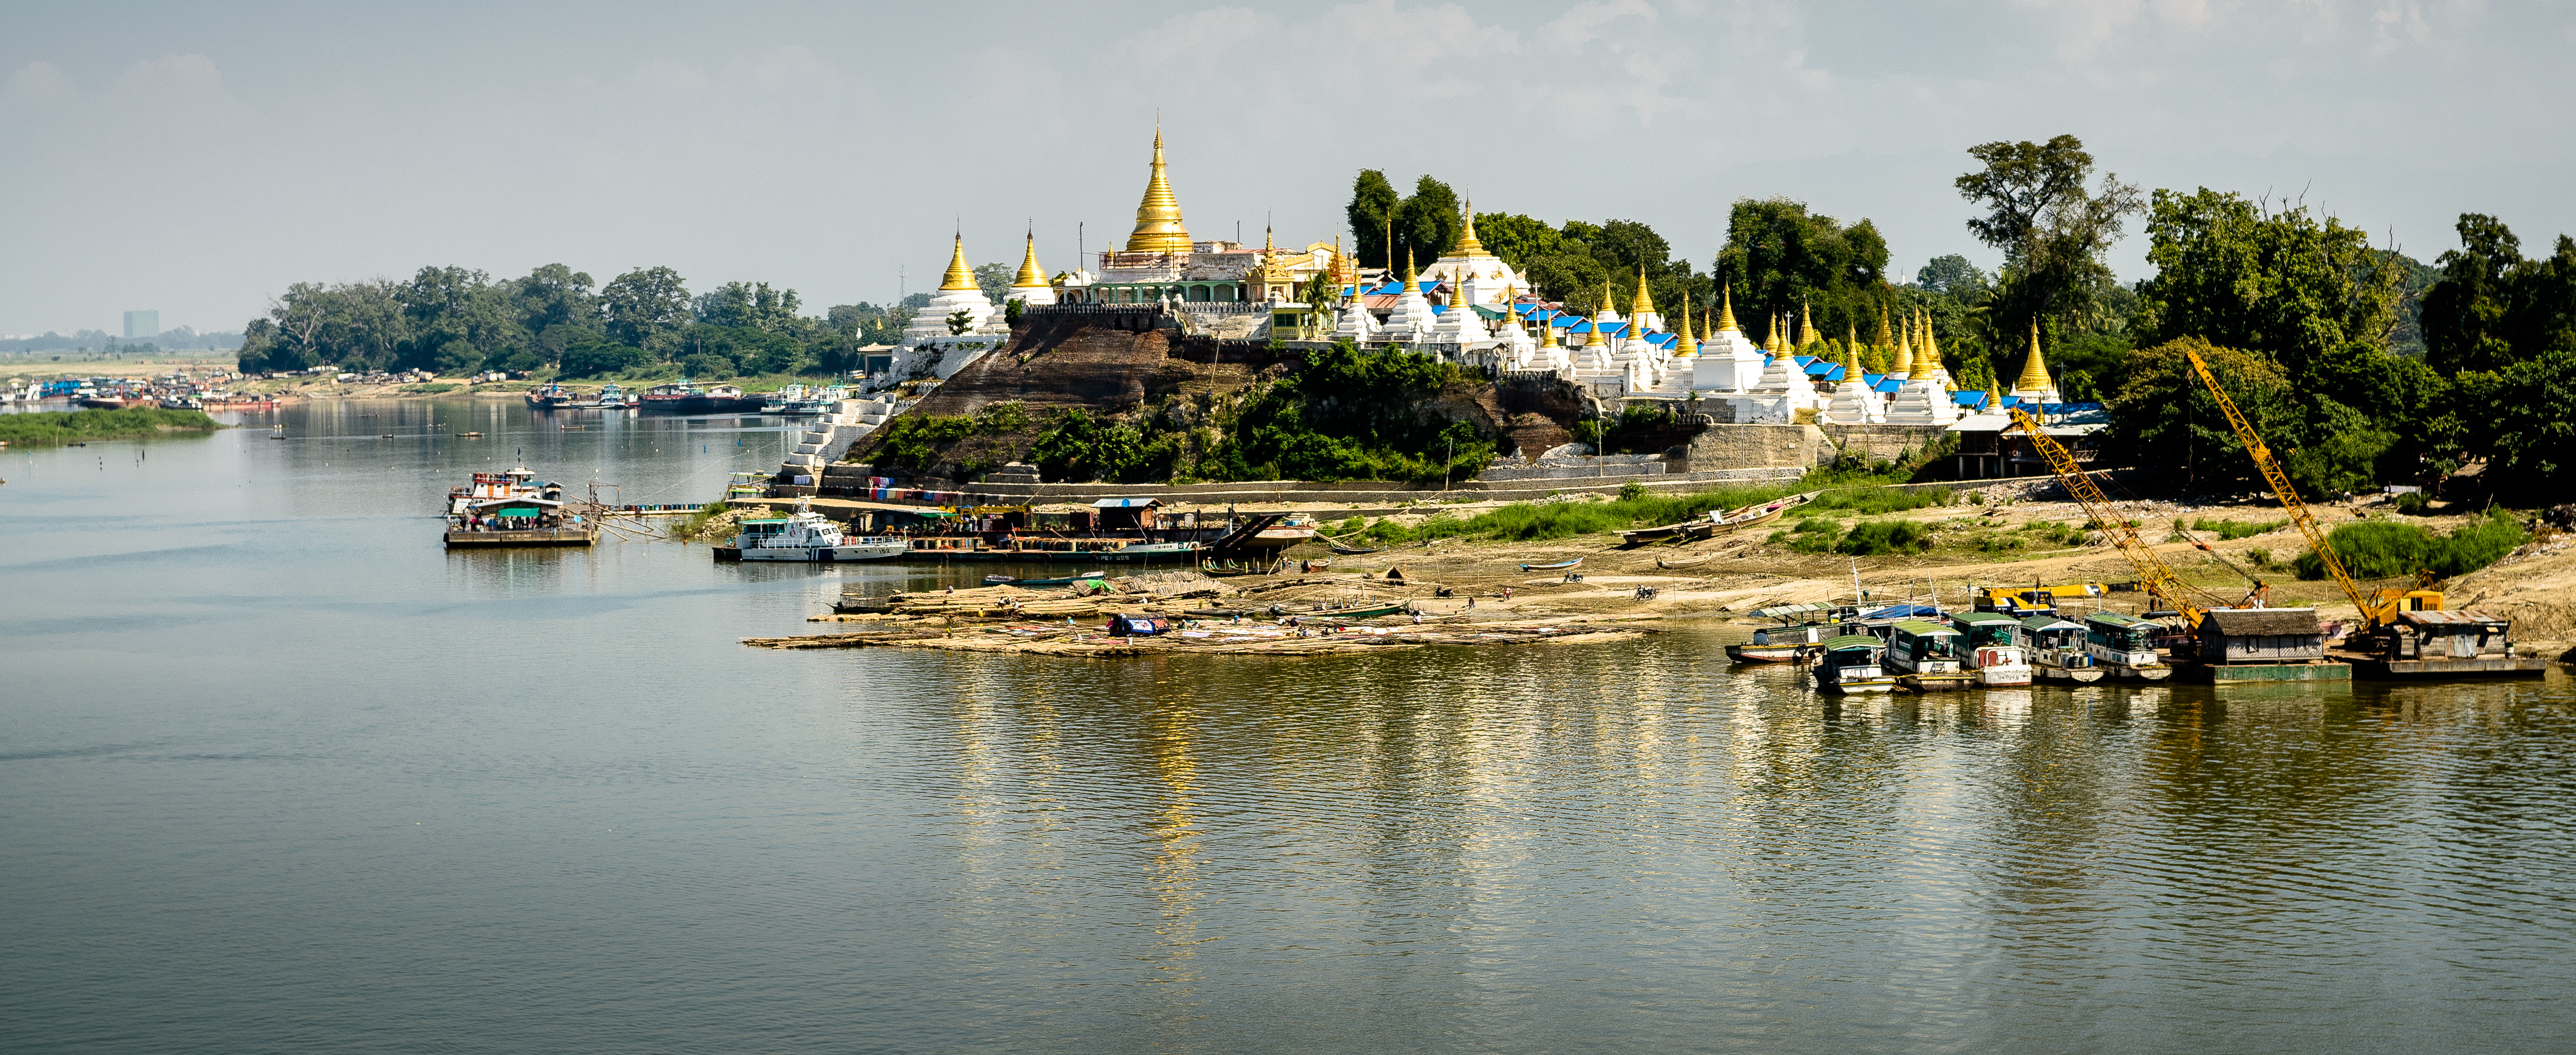 temple-view-from-irrawaddy-river